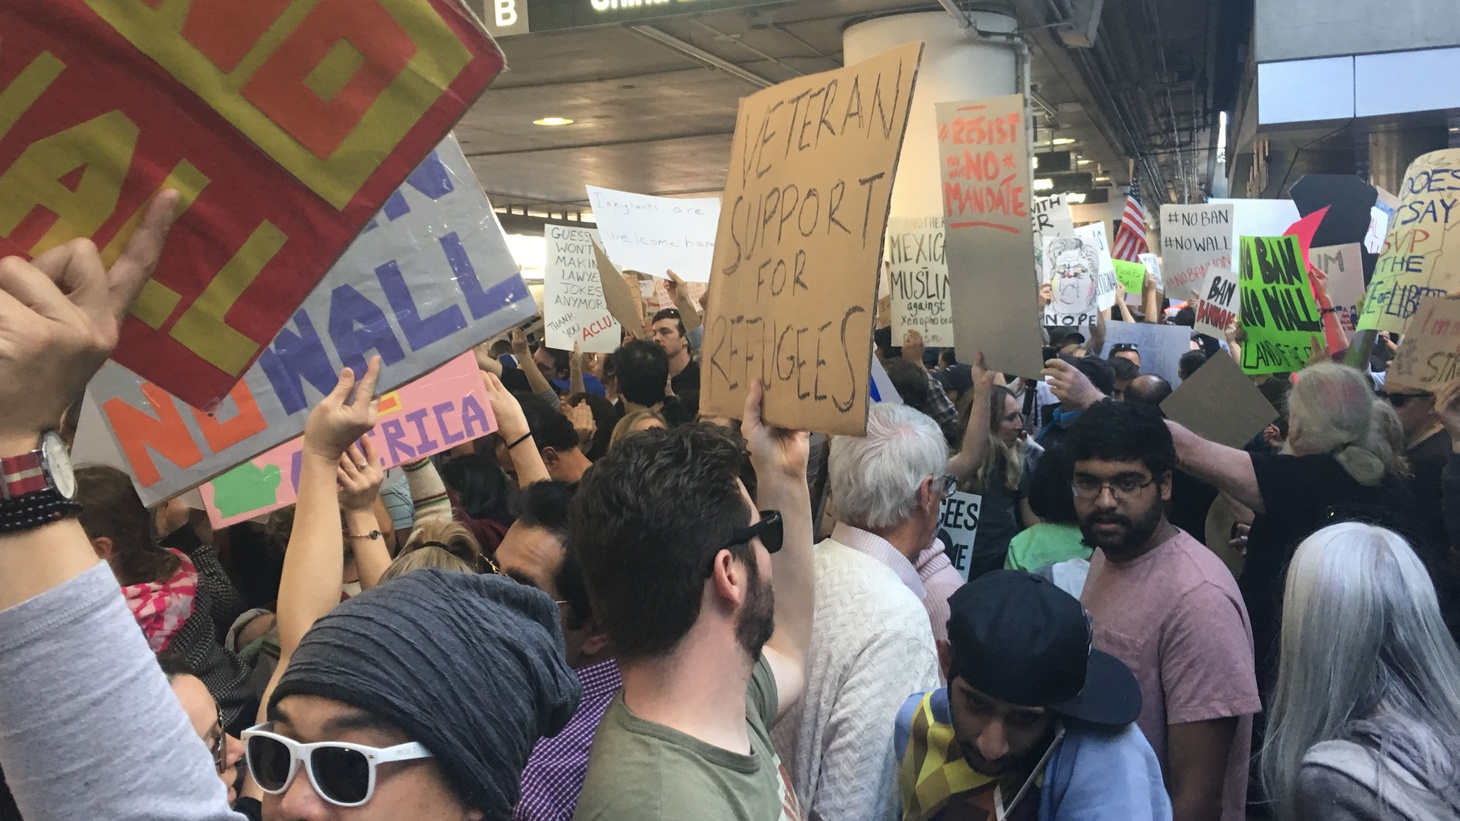 Protests erupted nationwide over President Donald Trump's executive order banning people from seven majority-Muslim countries from entering the U.S. We discuss it with California Senator Kamala Harris, and learn about one of the architects of the ban.